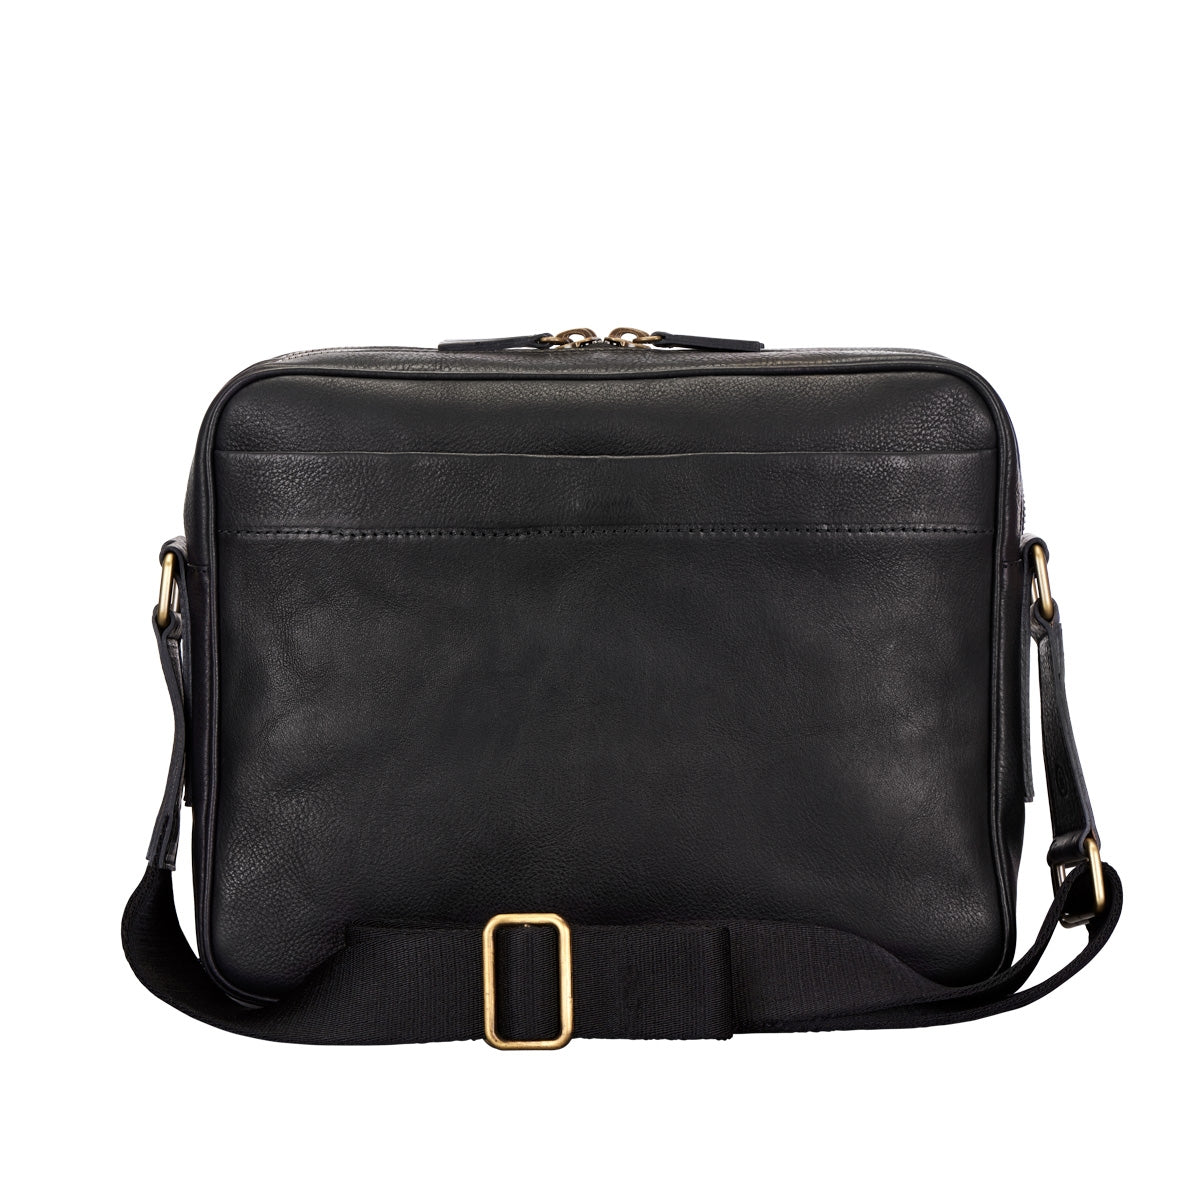 Image 4 of the 'SantinoM' Men's Italian Black Leather Messenger Bag